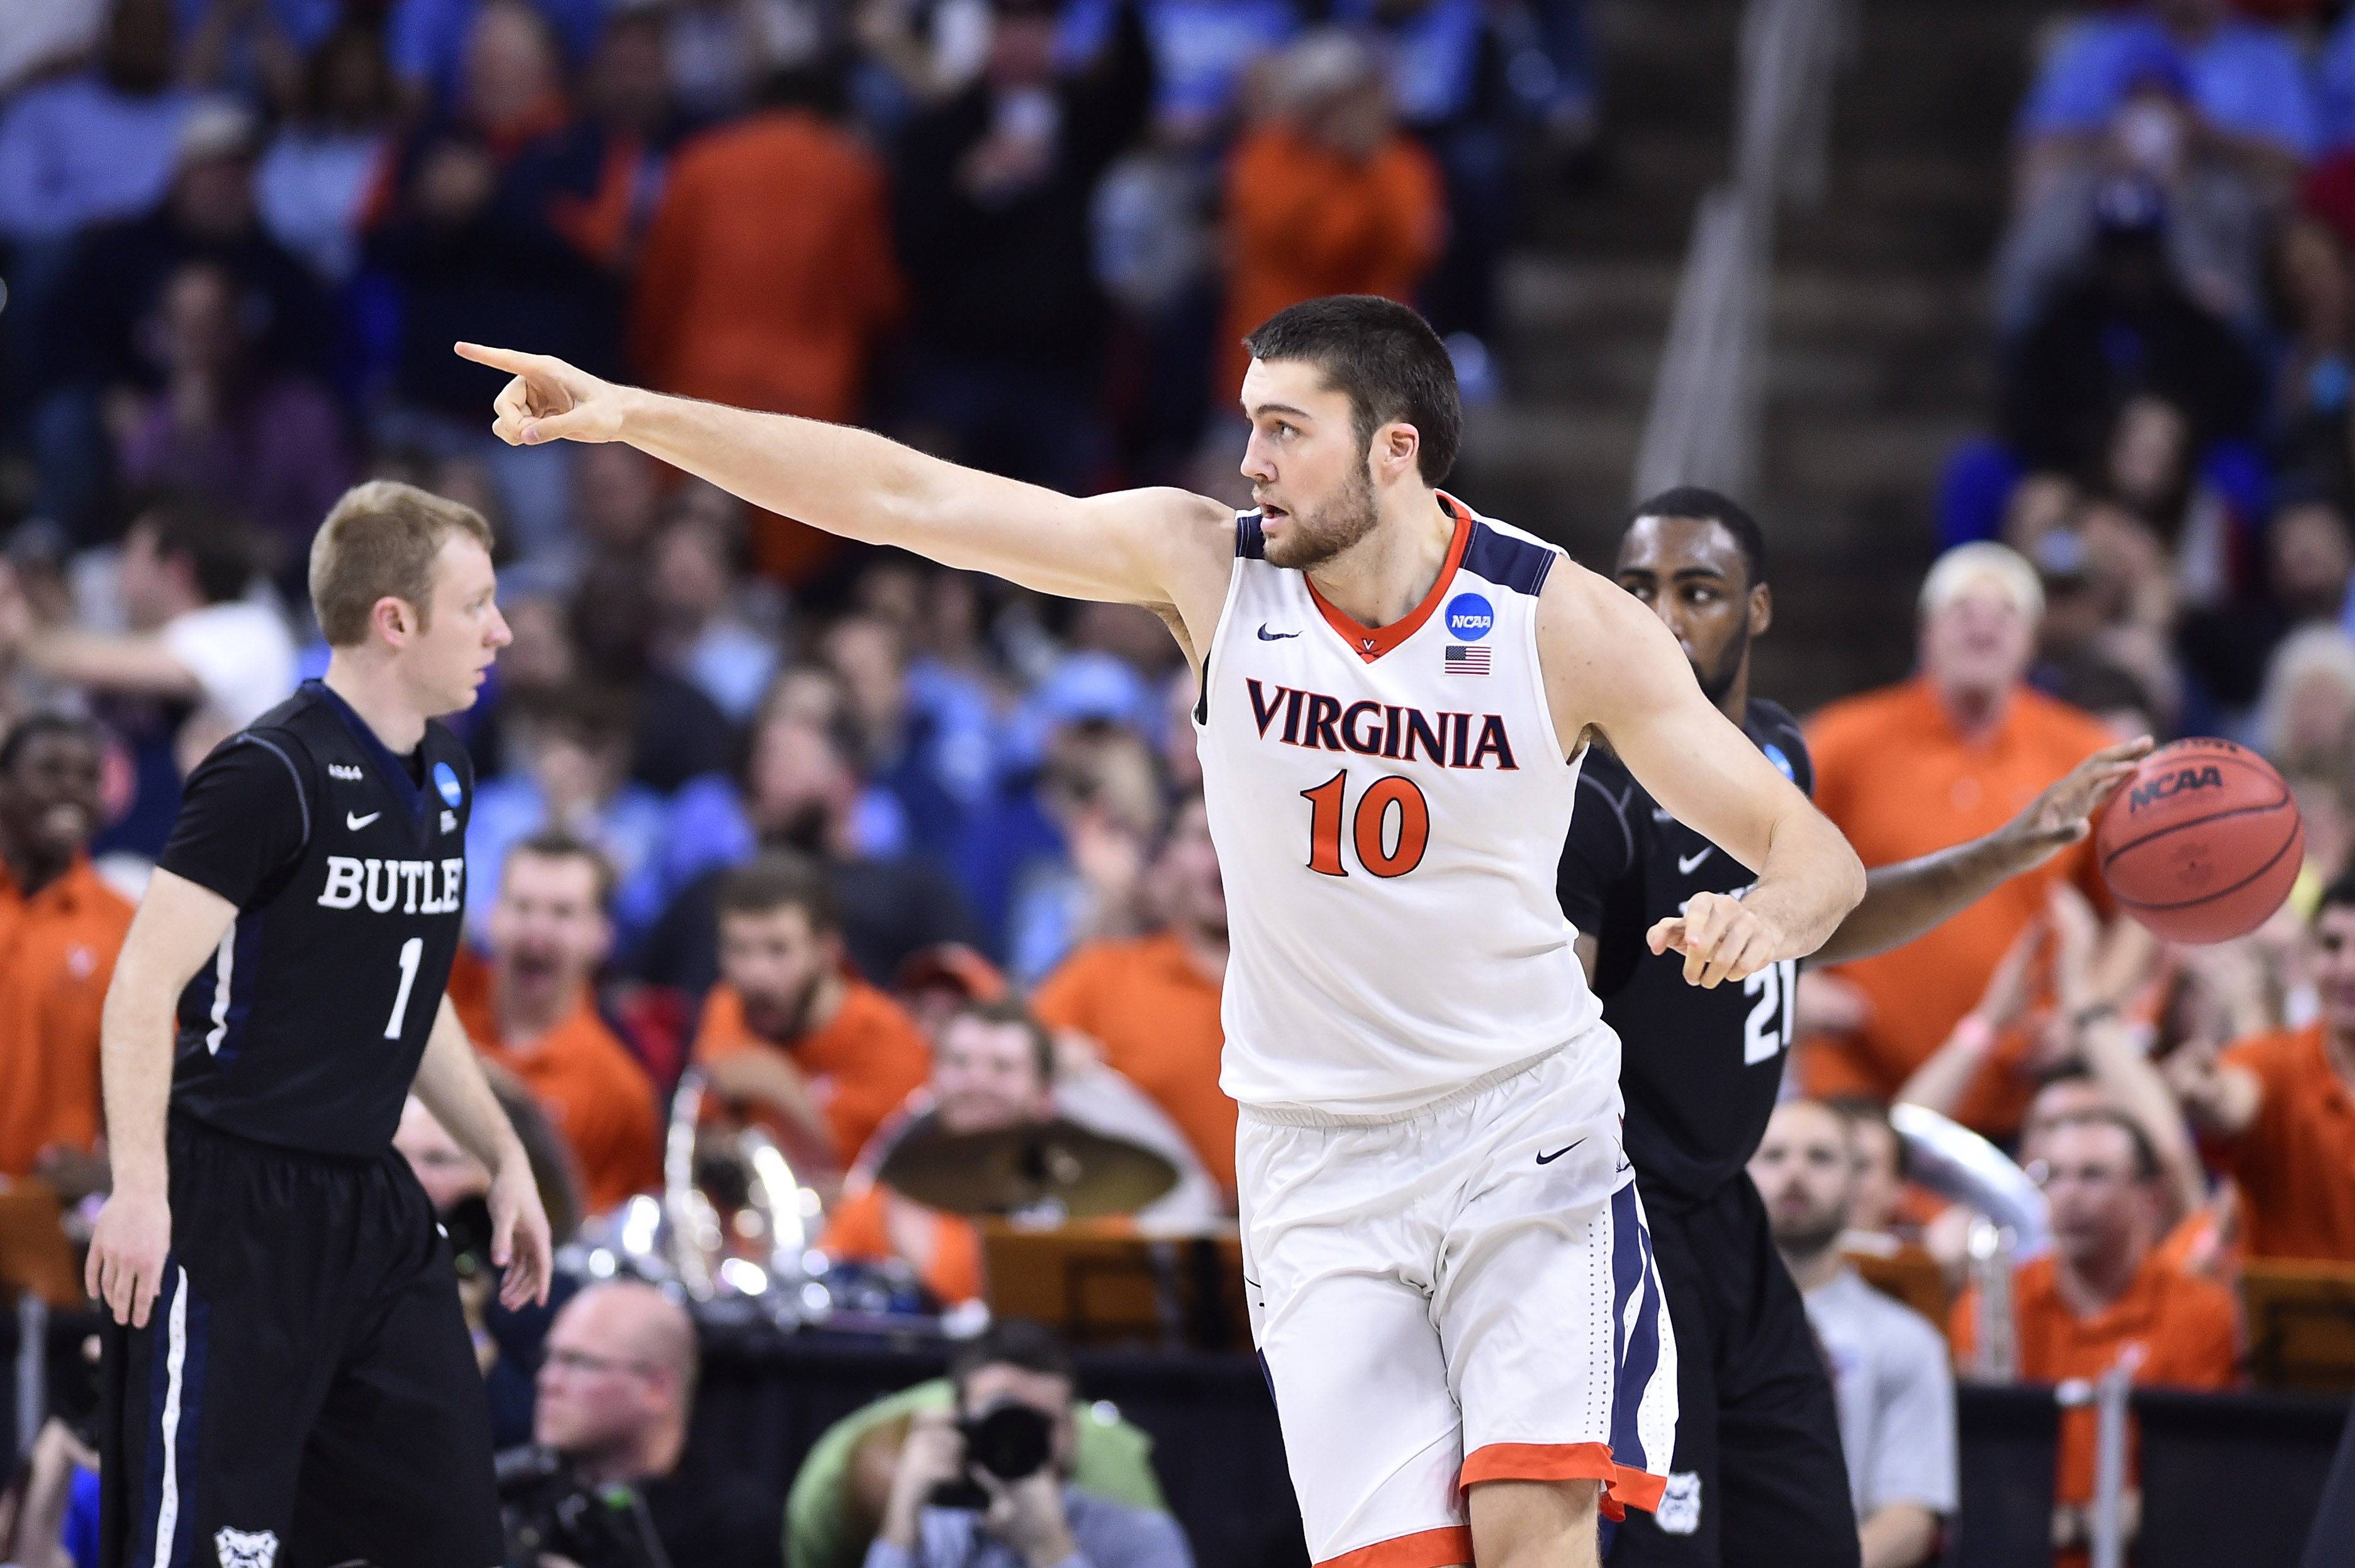 Streaking The Lawn Archives - Virginia Basketball - Page 4